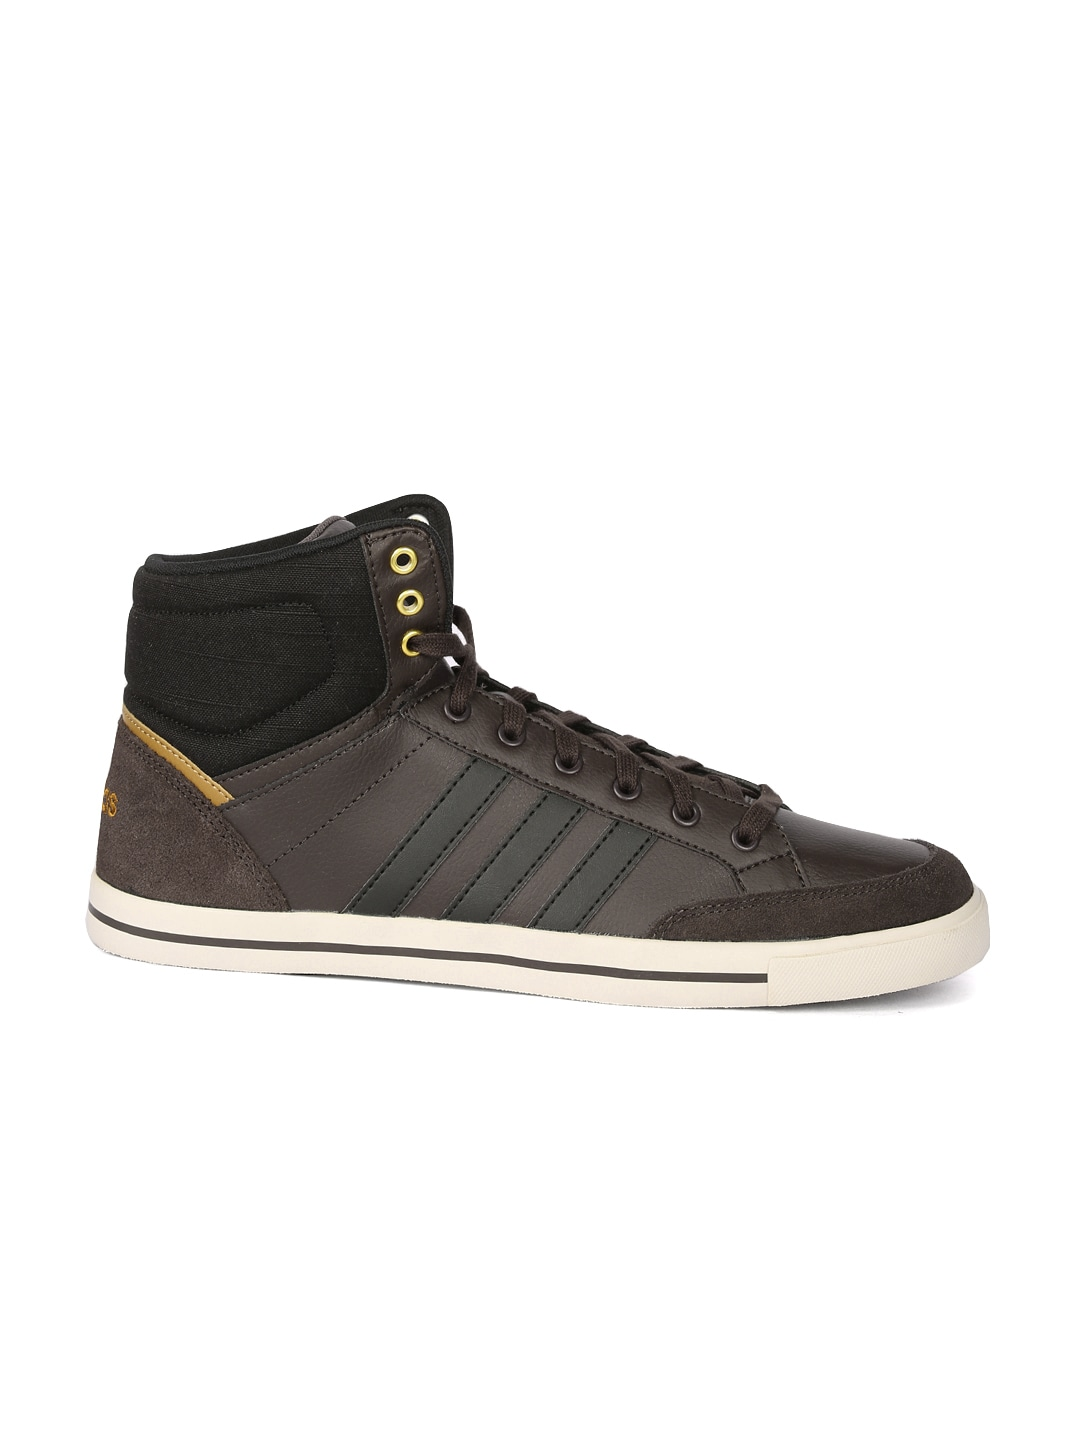 Adidas Neo High Tops Brown